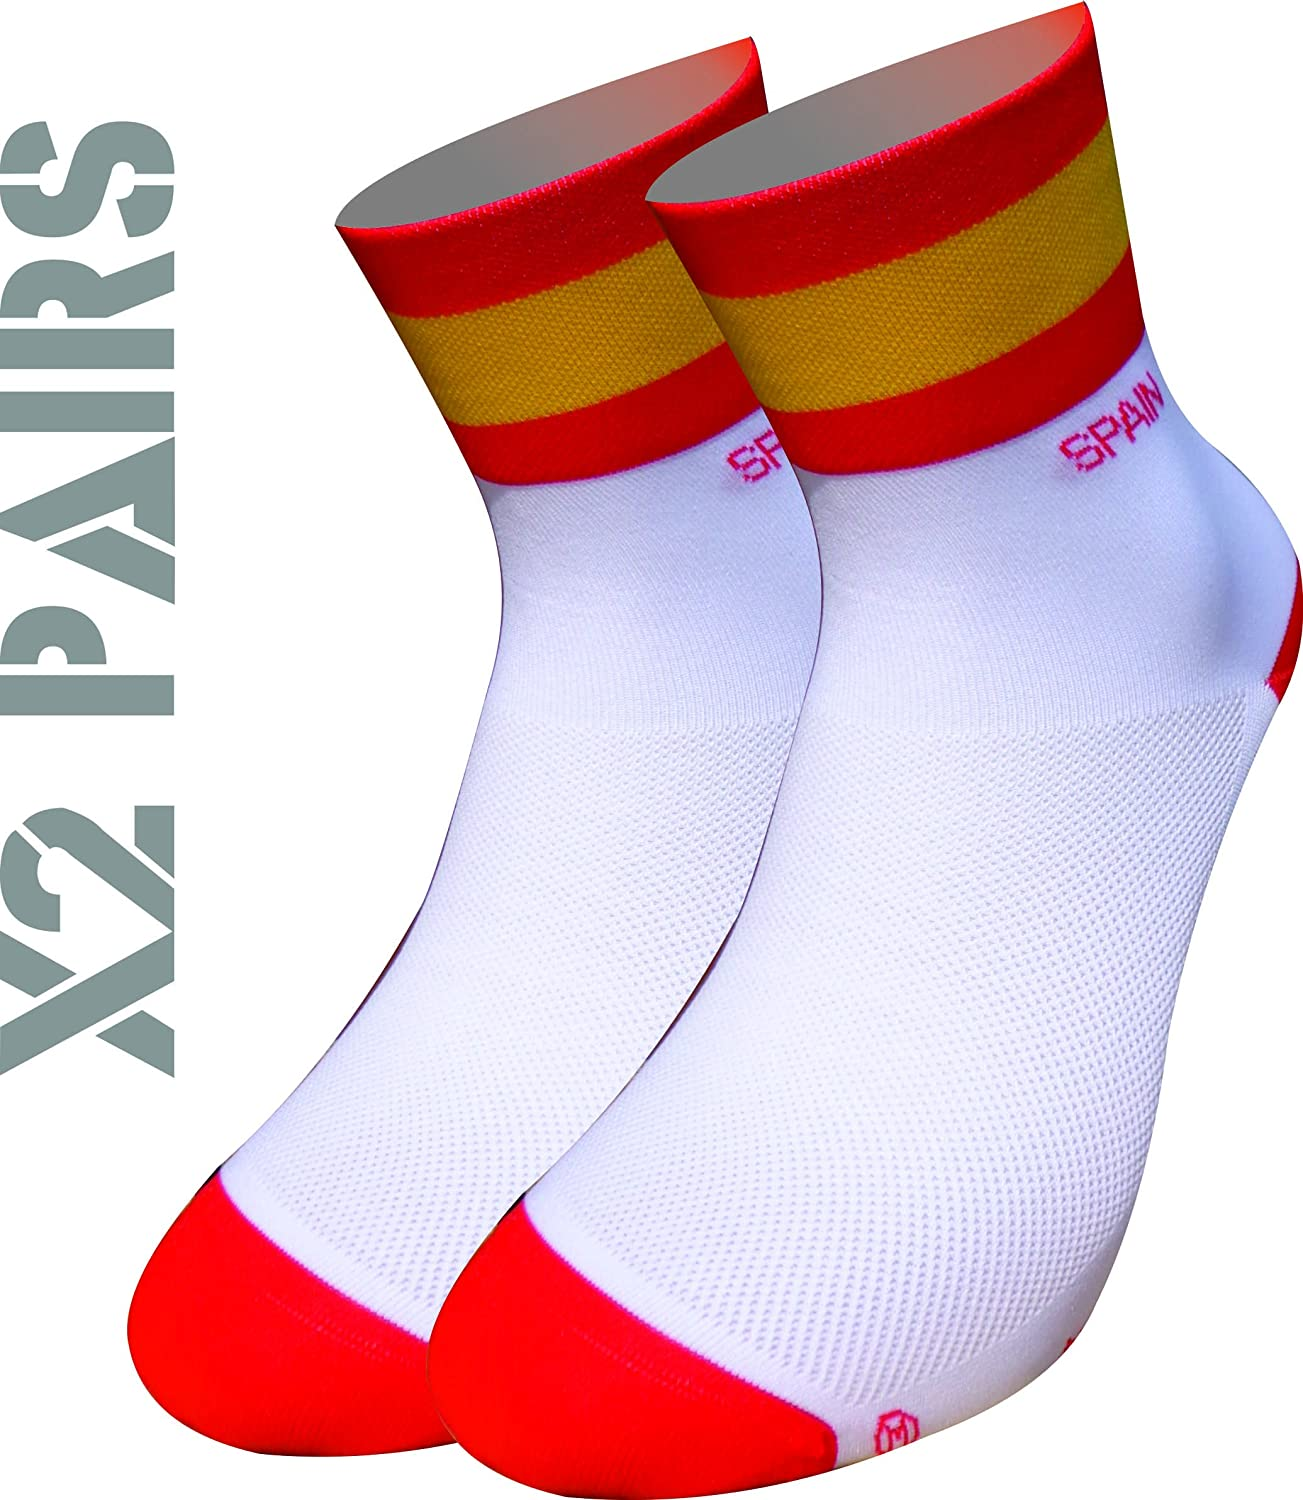 TKS España Socks Pack 2 Pares Softair+, Ciclismo, Running, Triatlon, Golf y Deportes en General.